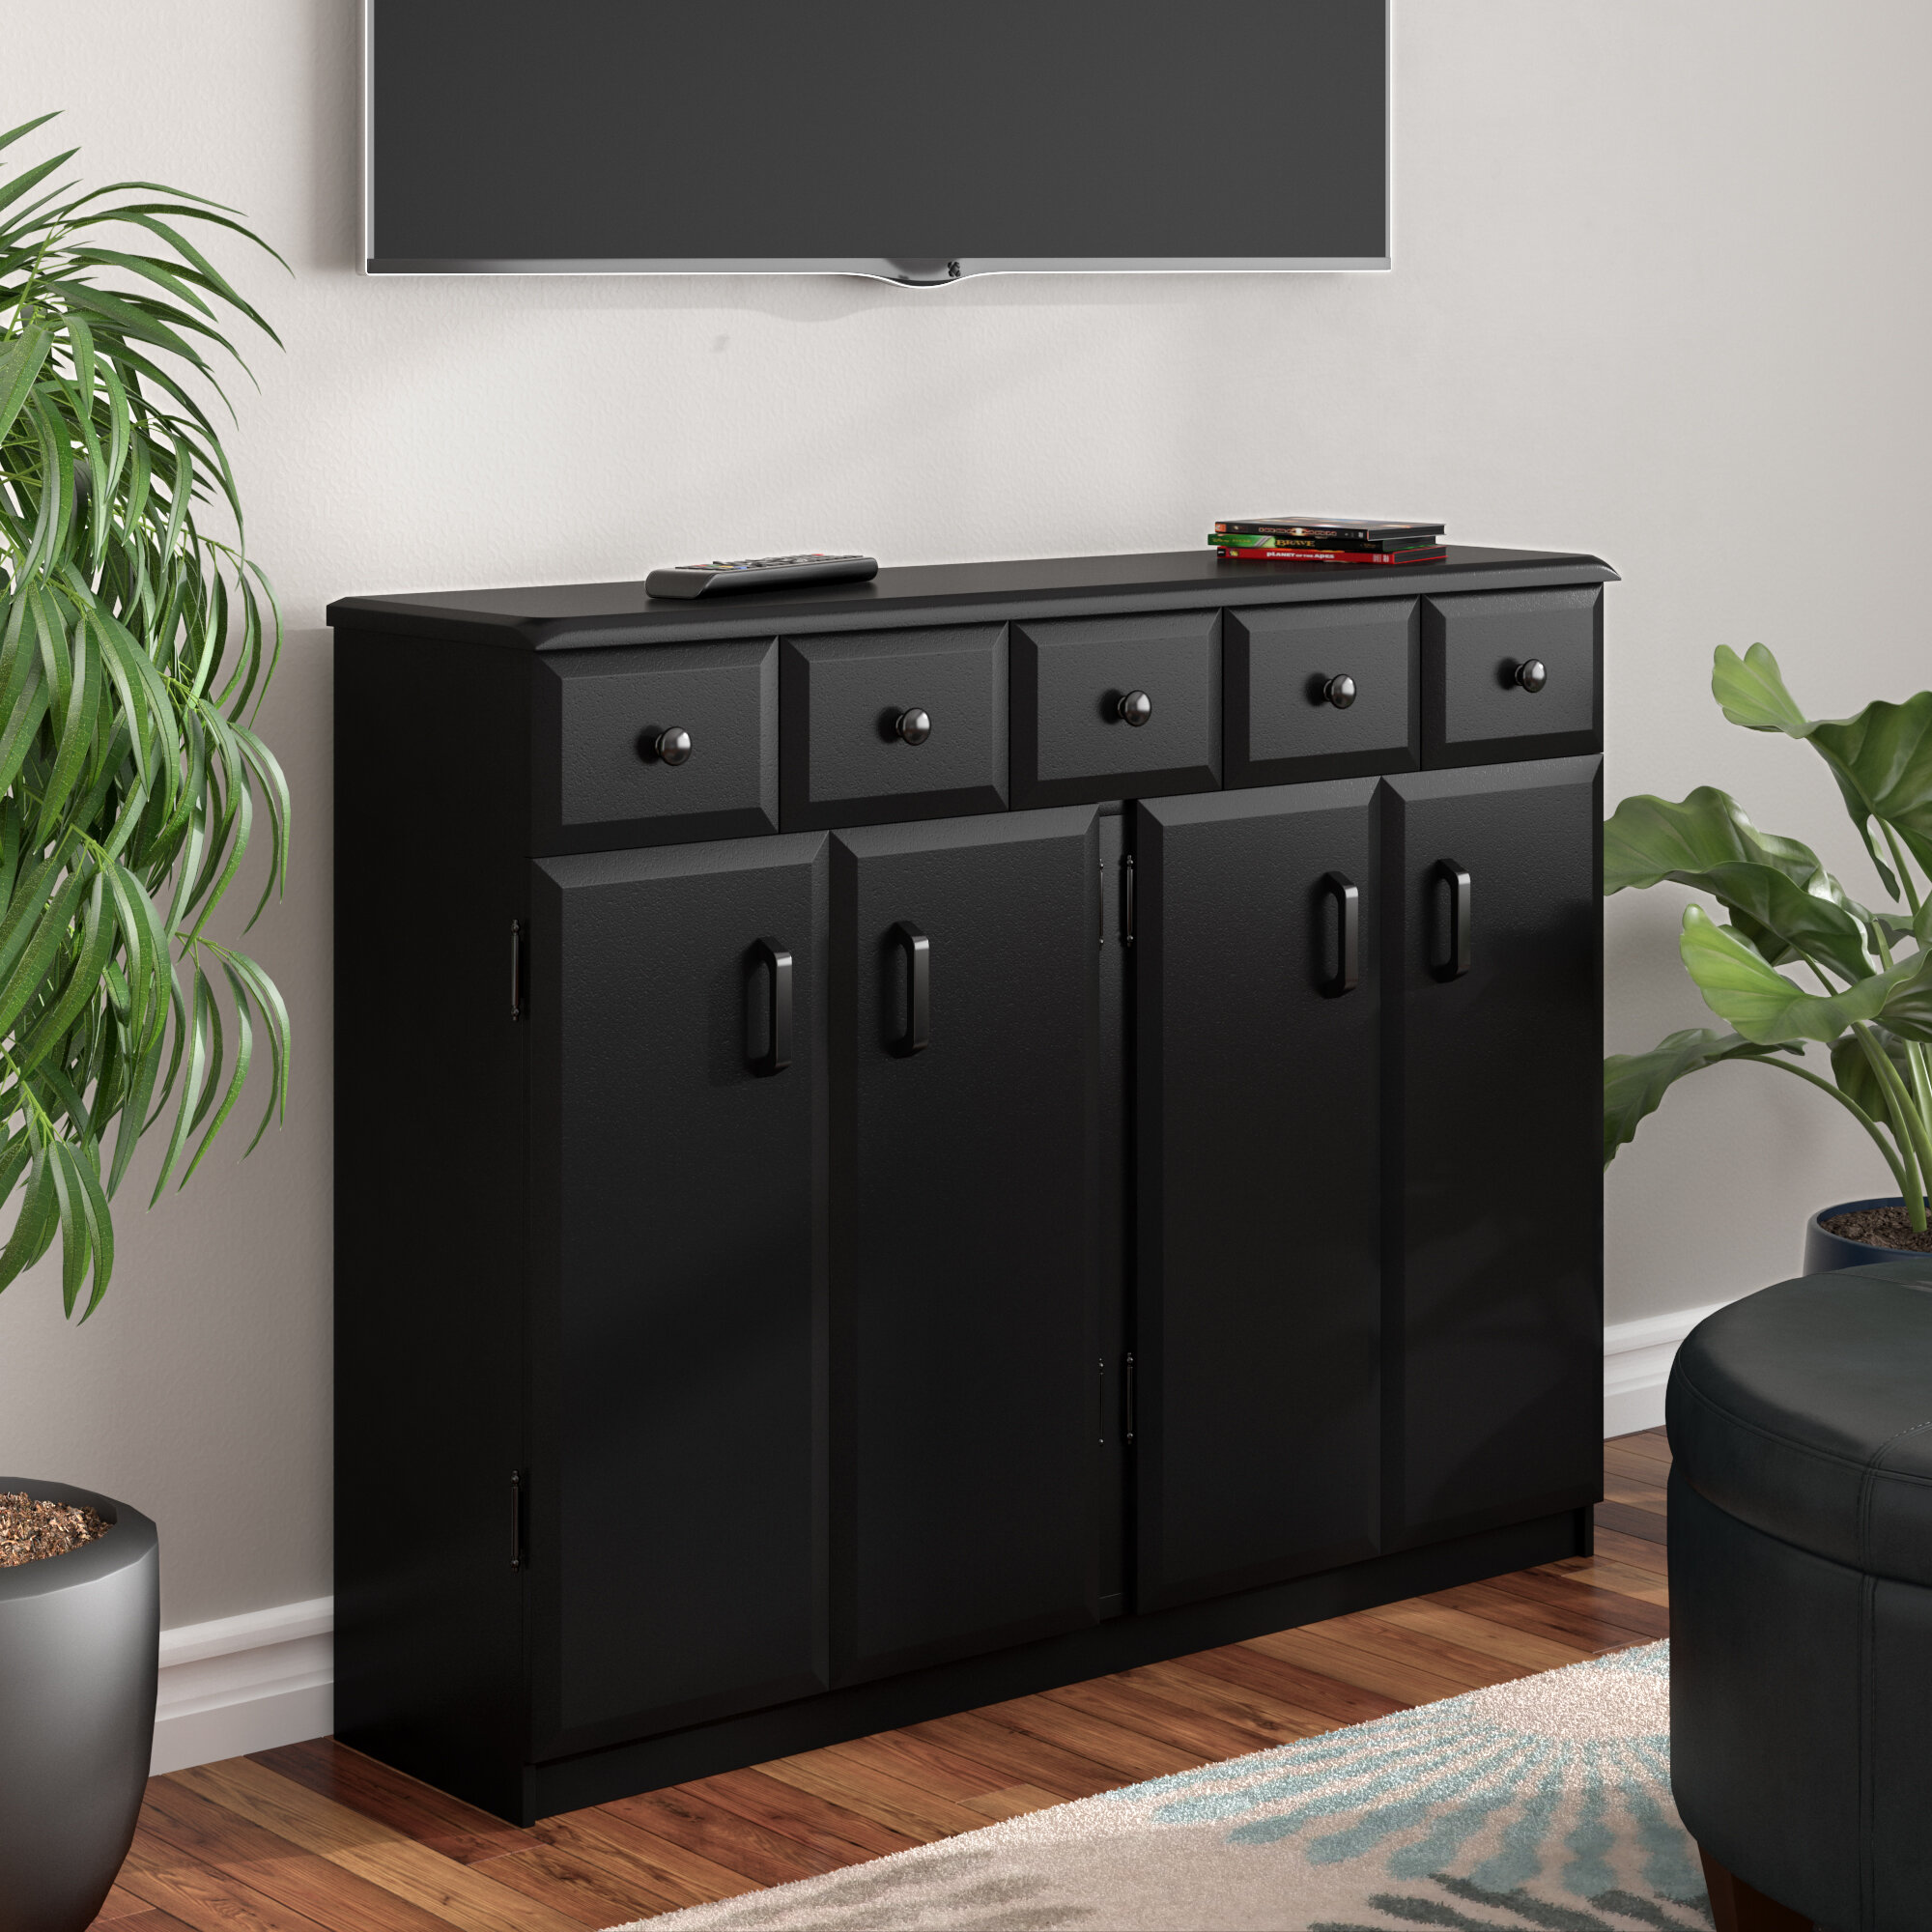 Charmant Red Barrel Studio Multimedia Cabinet With Library Style Drawers U0026 Reviews |  Wayfair